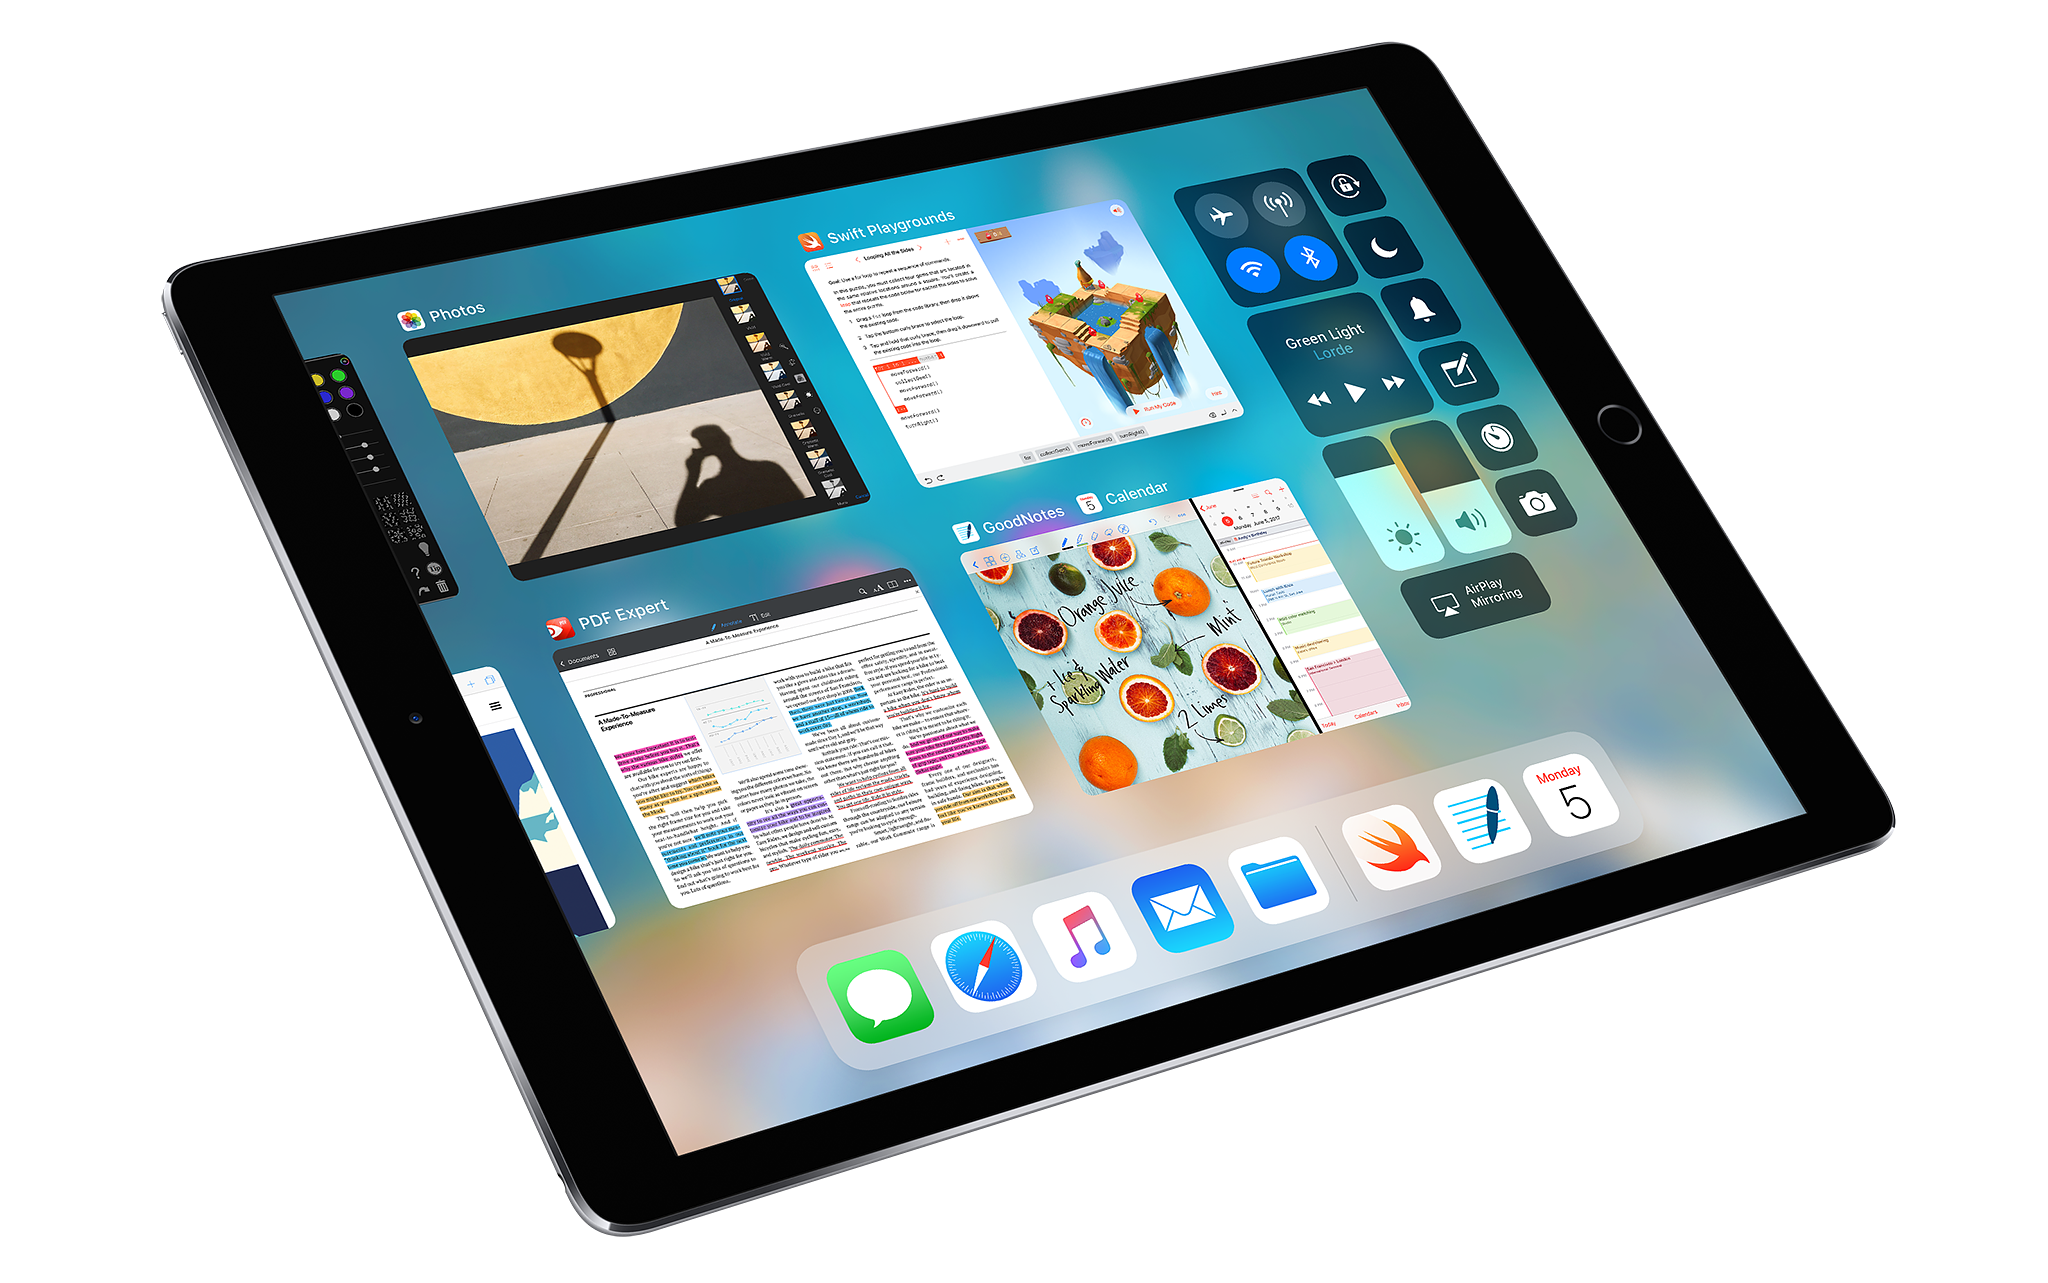 Drawing ipad 9.7. Pro new features and